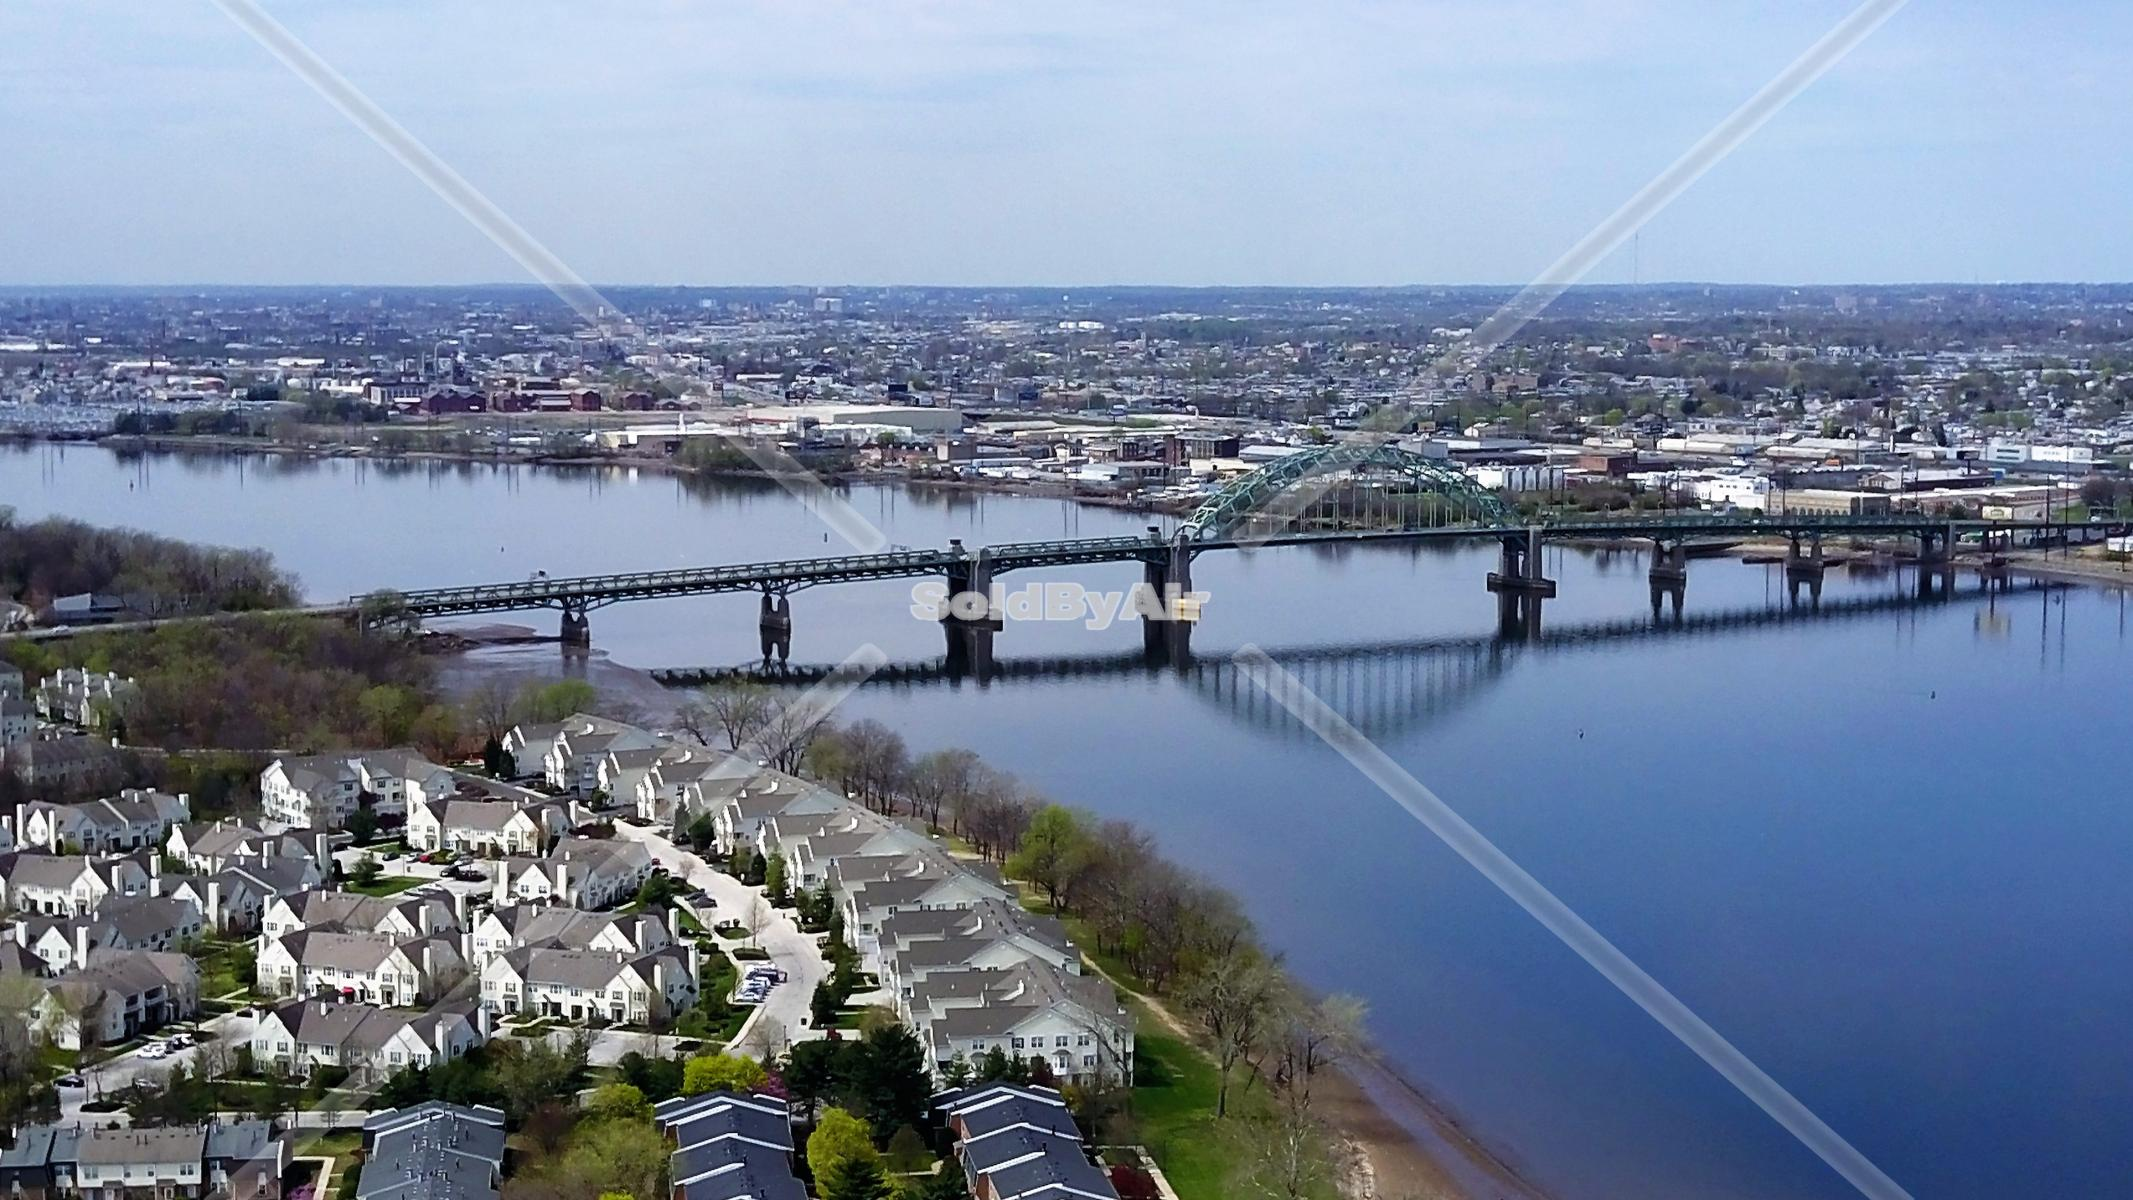 Drone Photo of Tacony Palmyra Bridge over the Delaware River  in Palmyra New Jersey